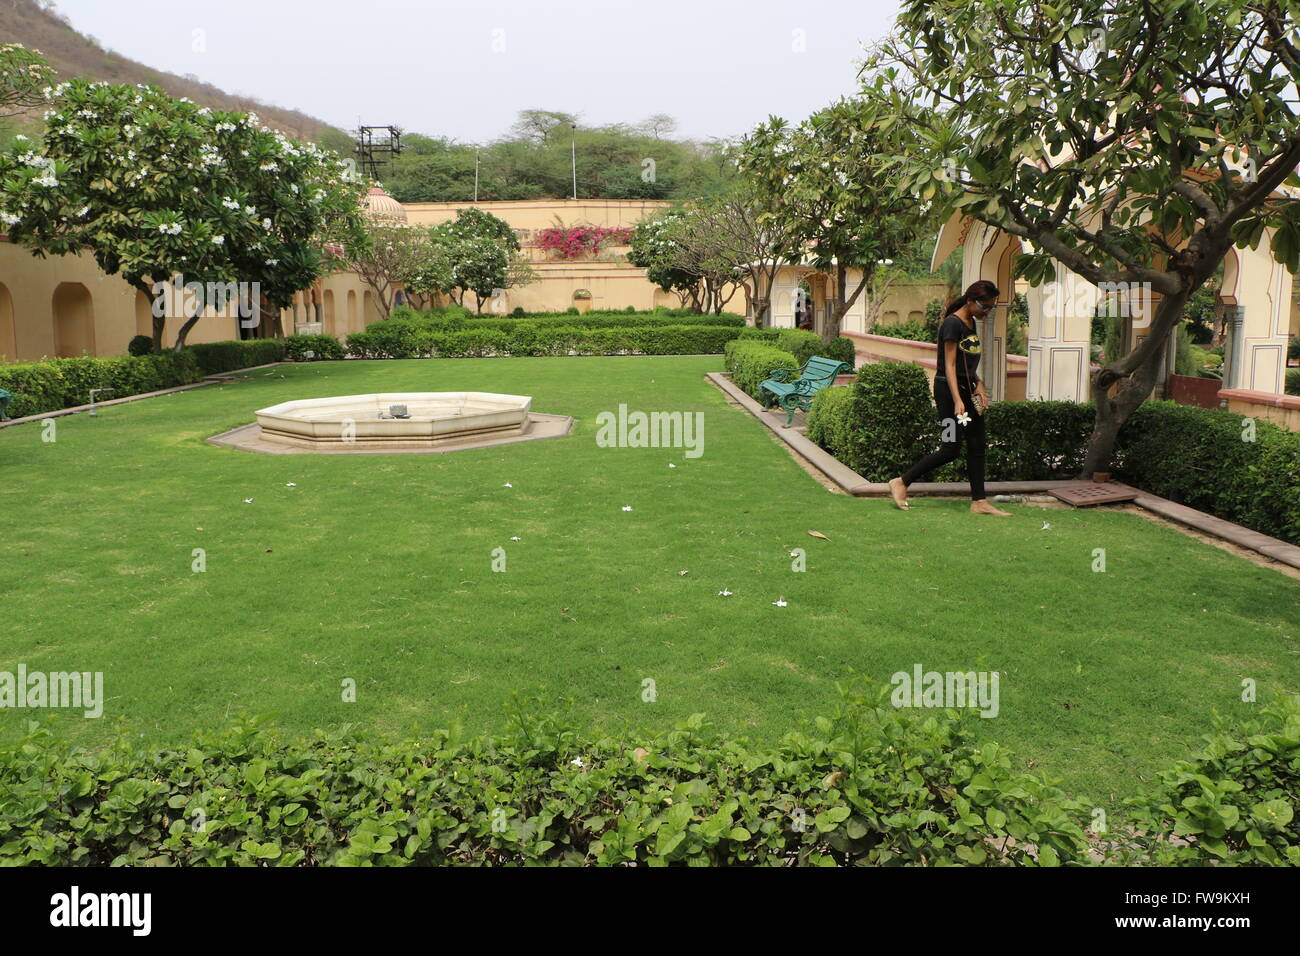 Sisodia Rani Gardan Palace Jaipur Stock Photo 101631449 Alamy